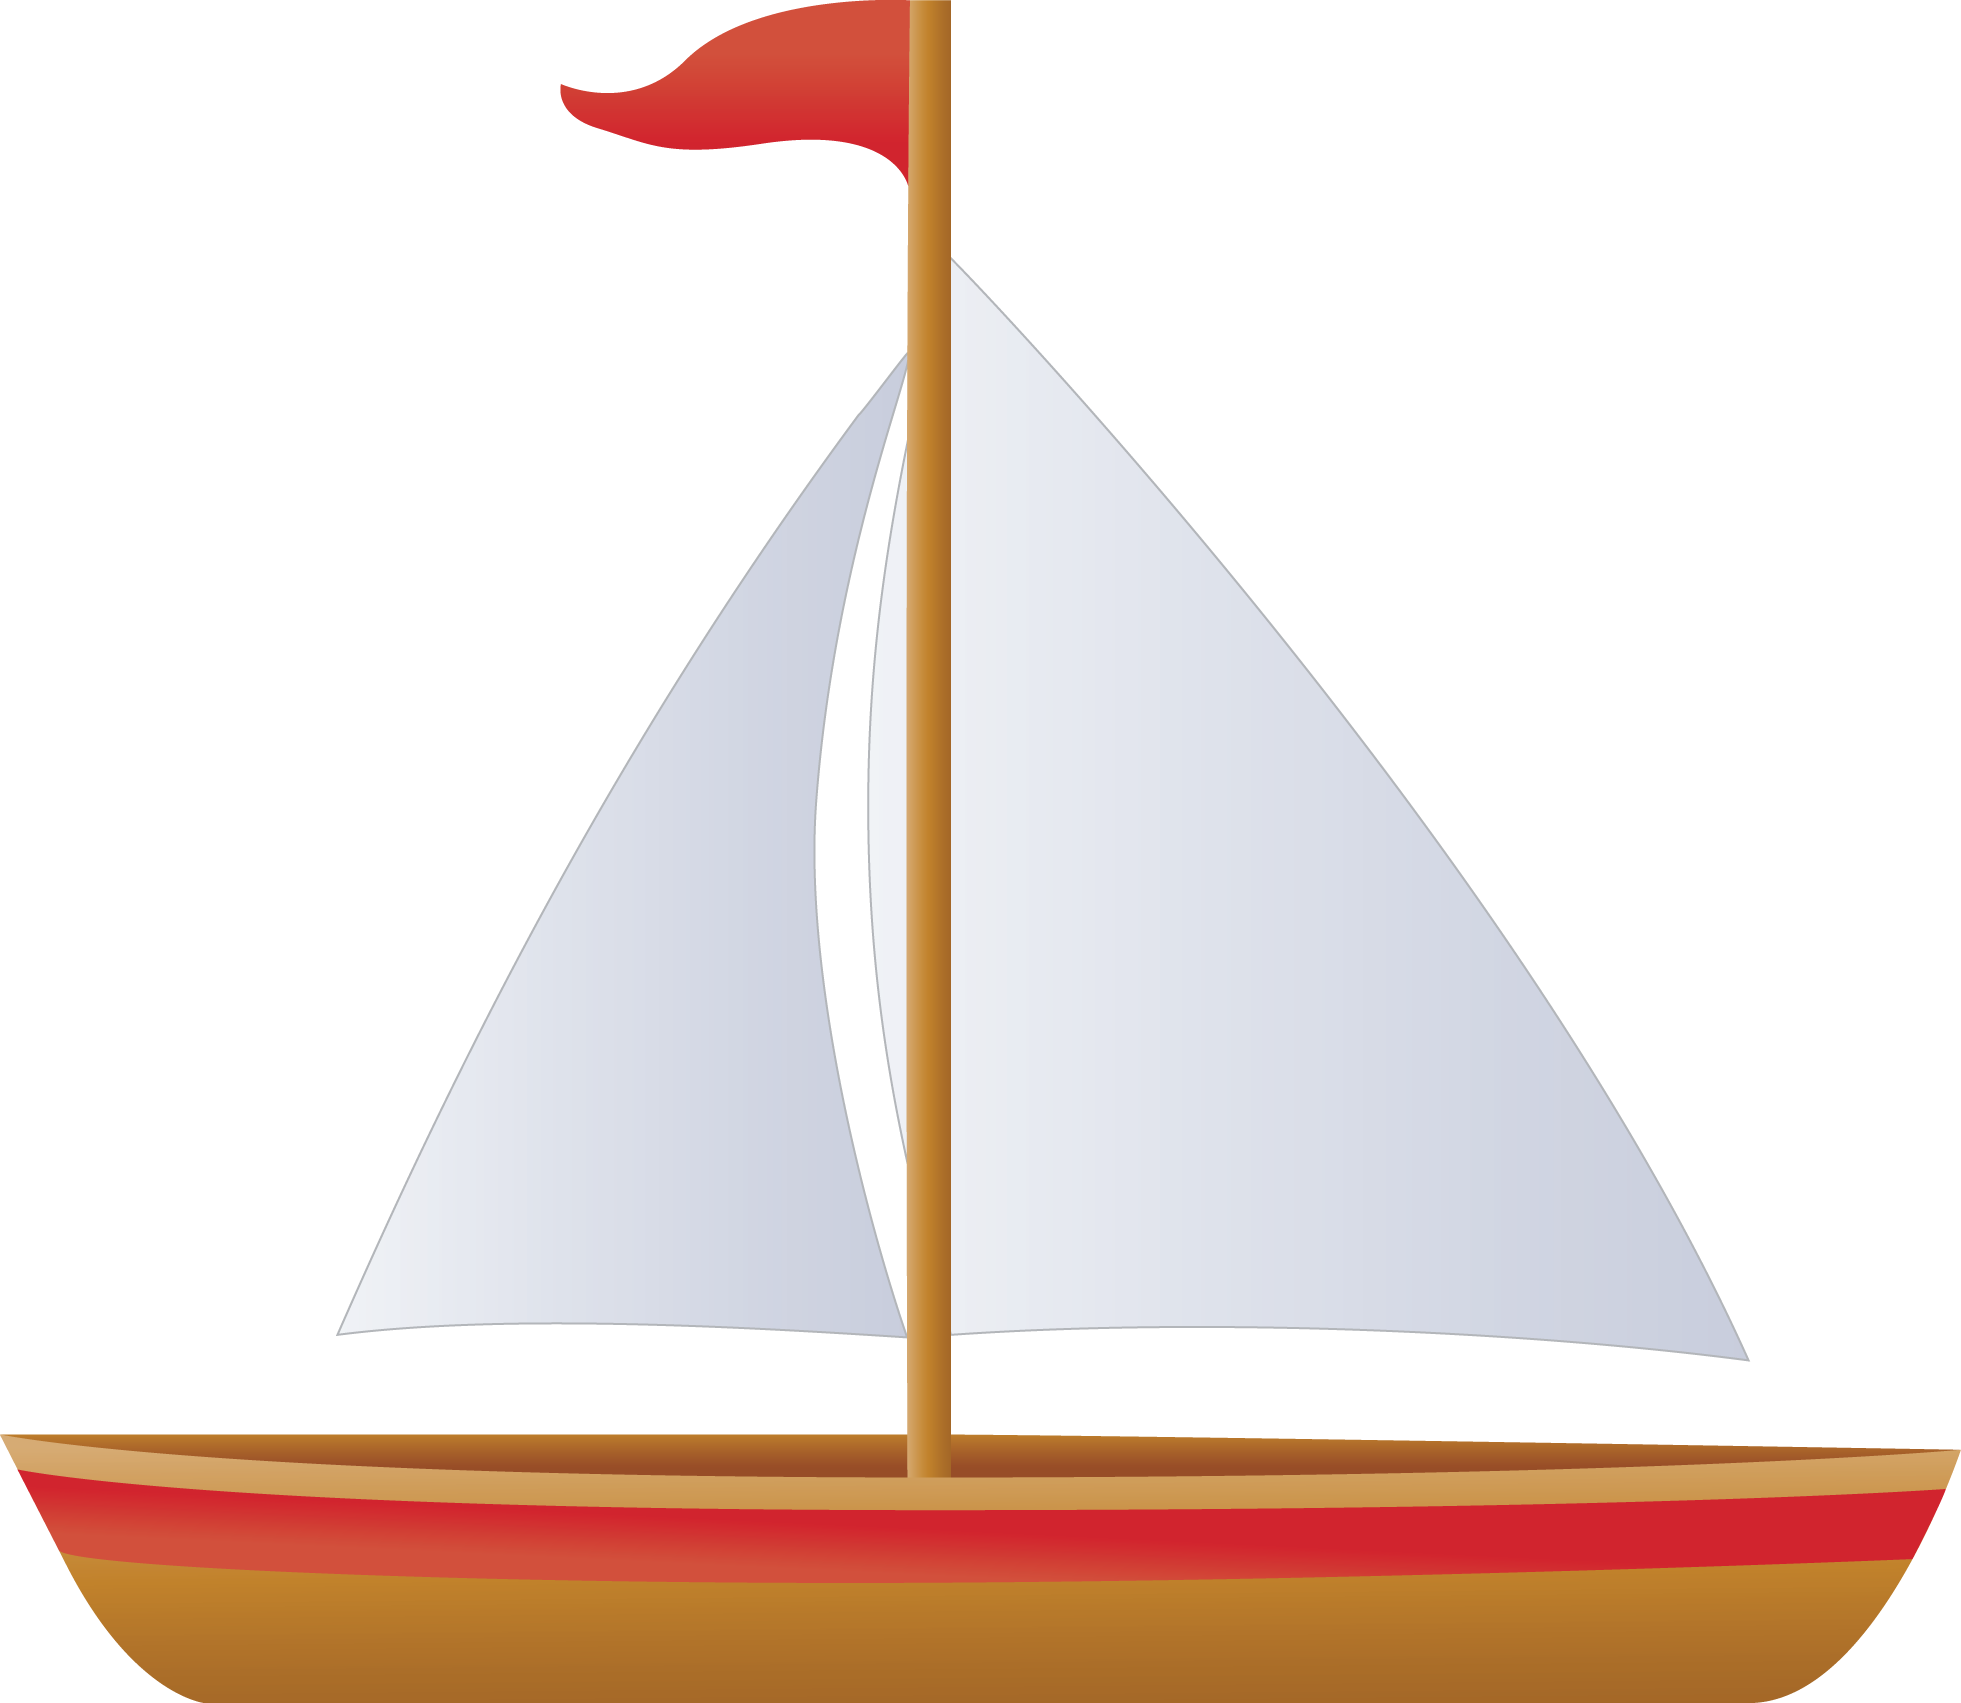 Cartoon sailboat png. Sailing transparent images pluspng